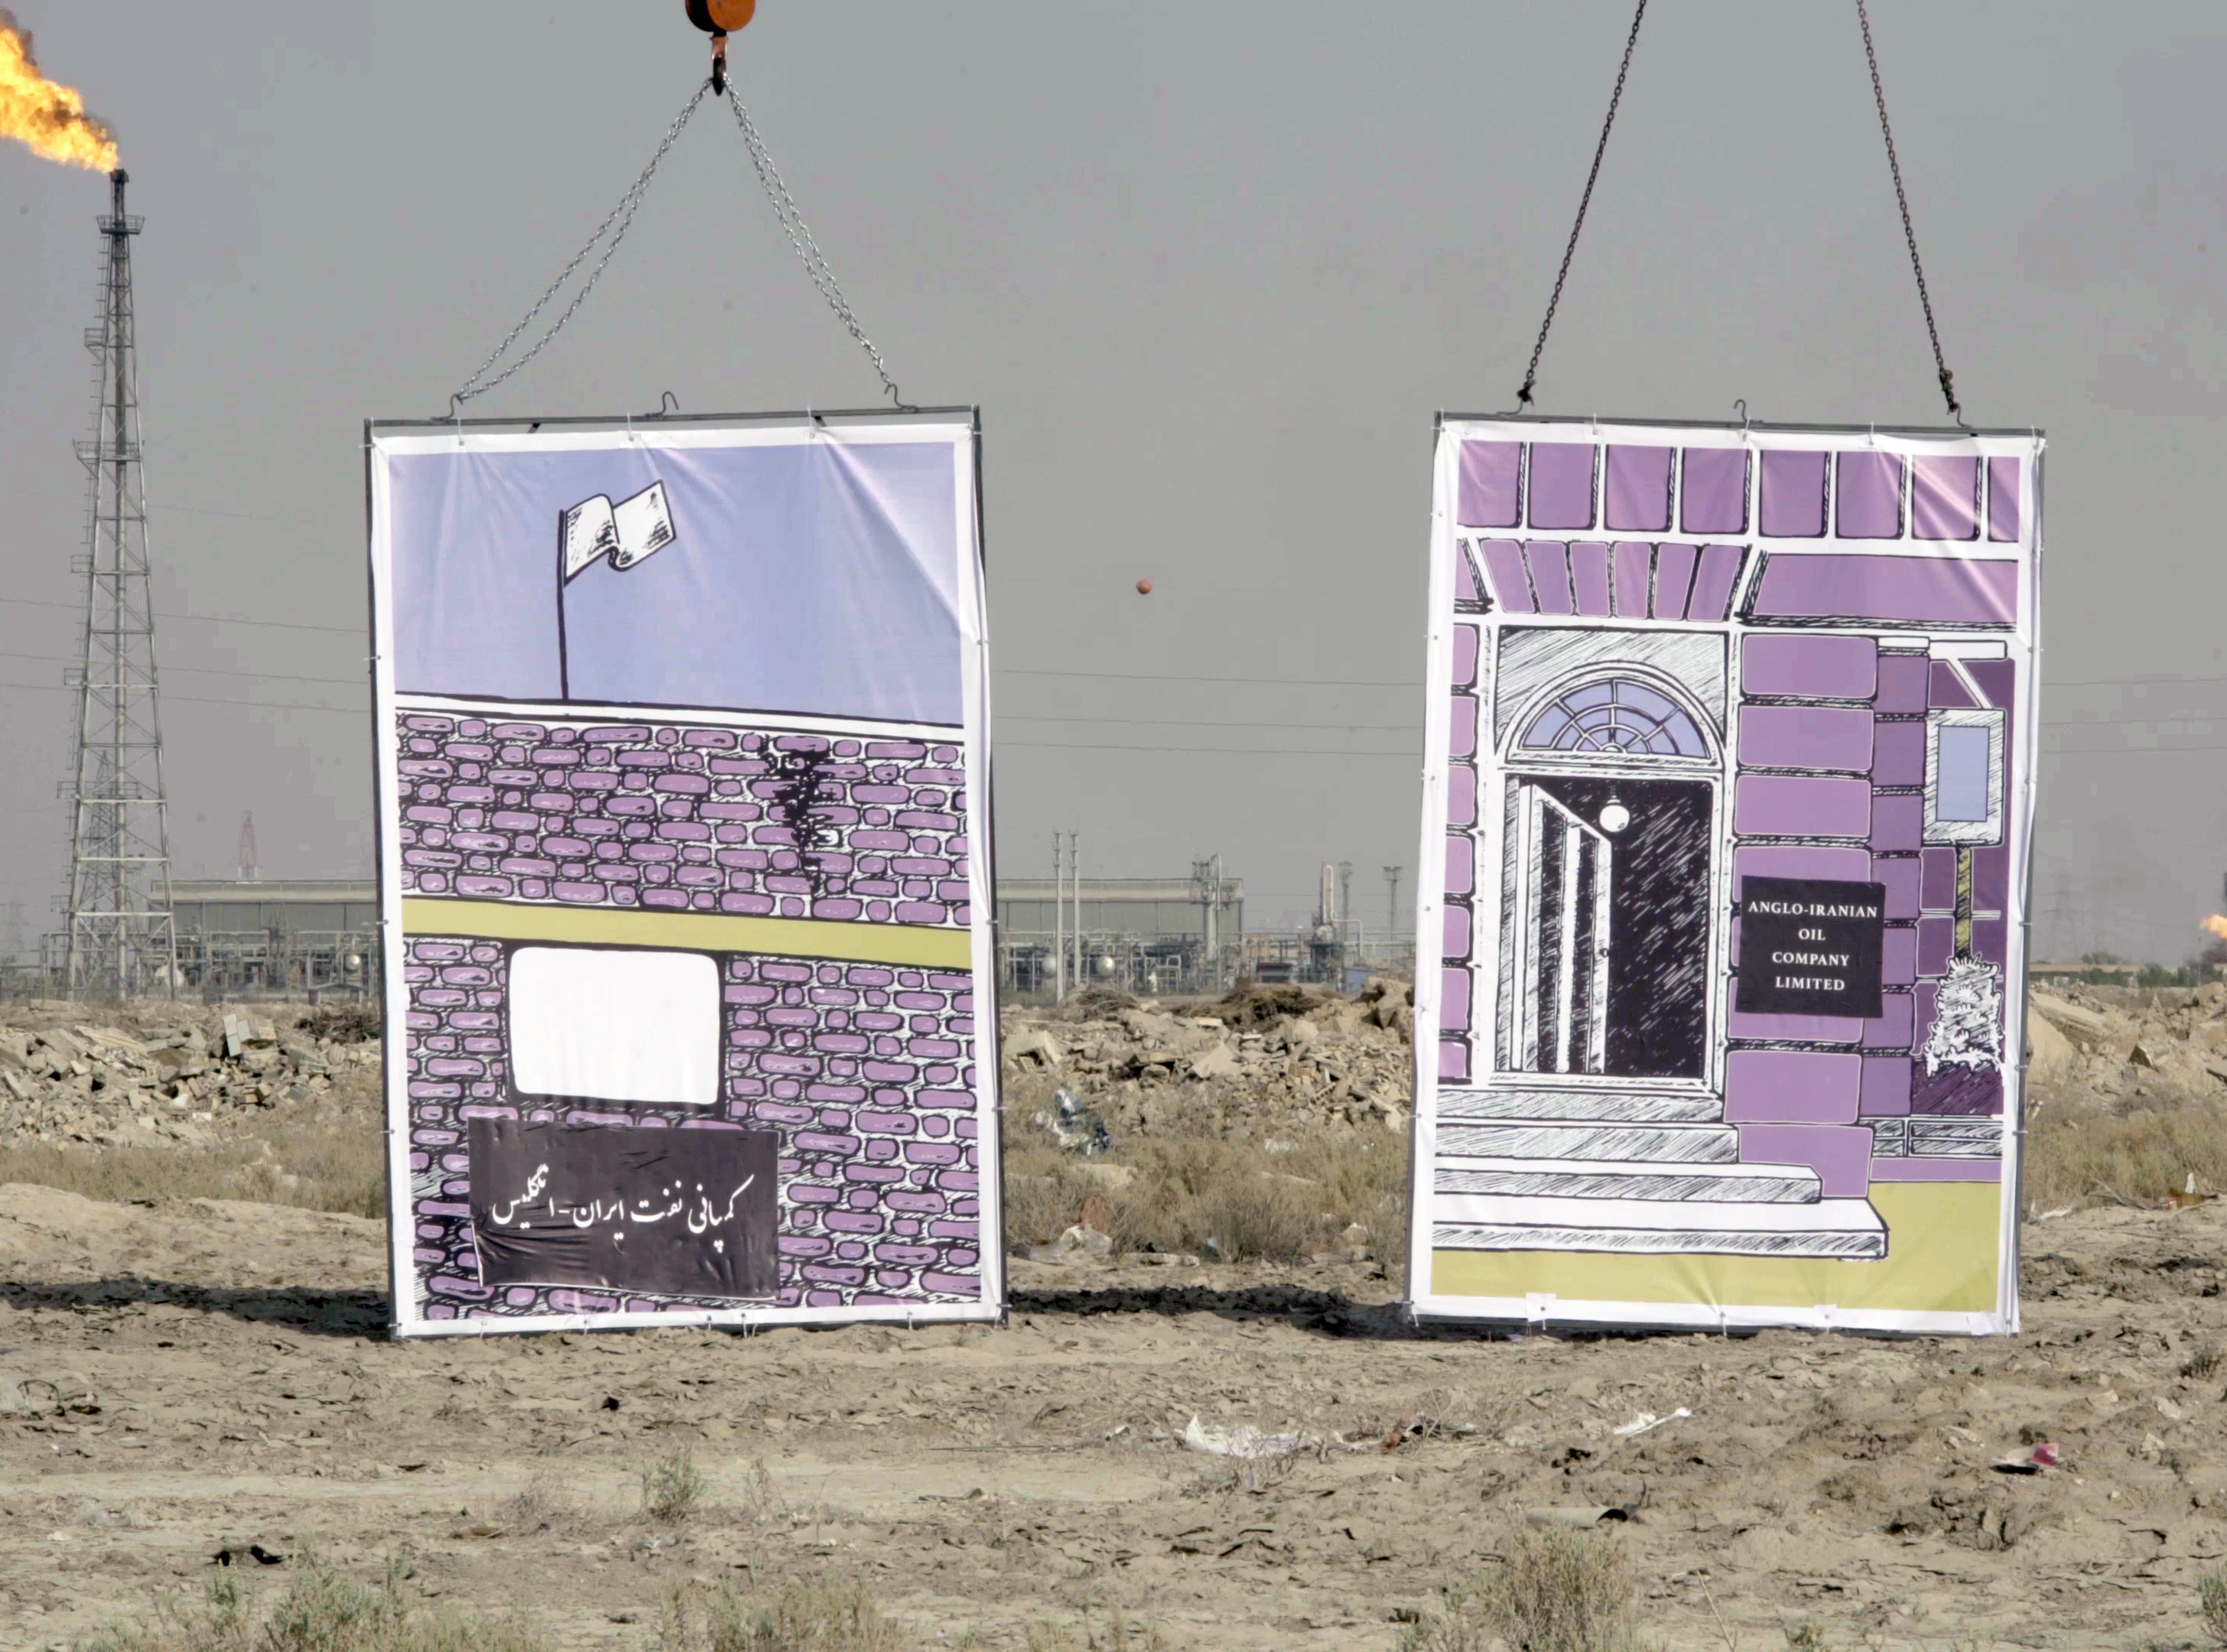 Installation view of construction site with two building illustrations held by chains